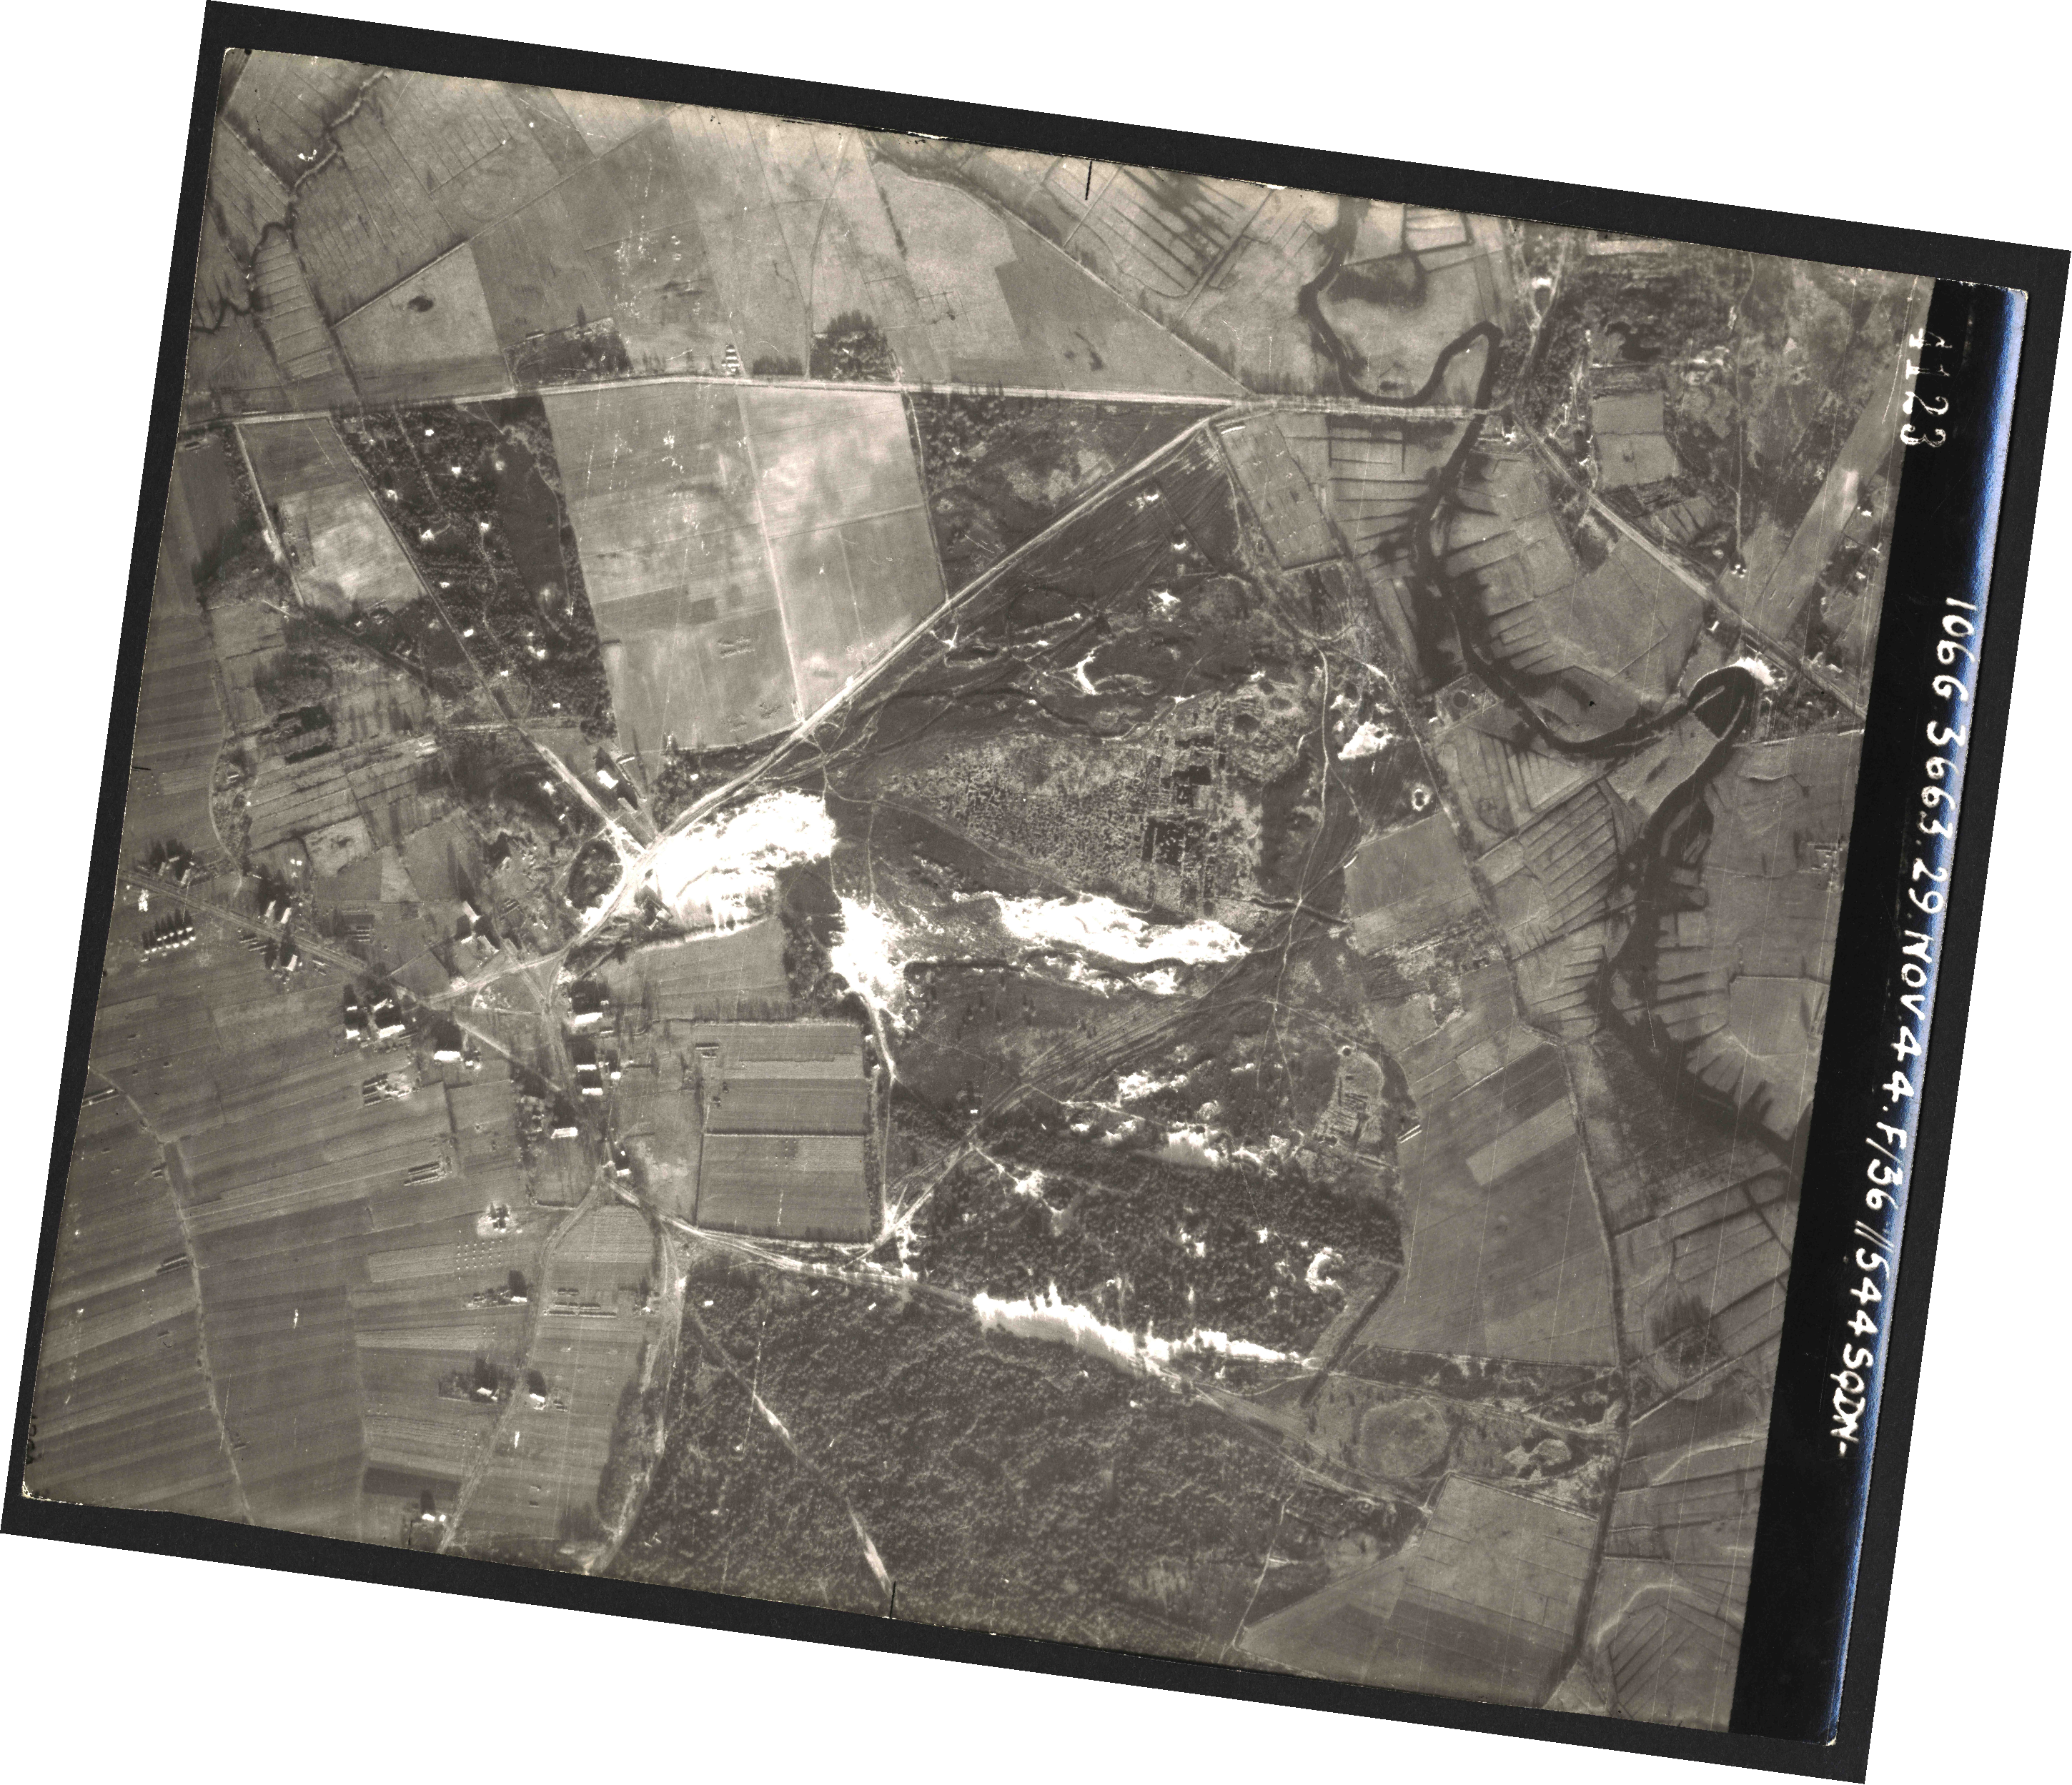 Collection RAF aerial photos 1940-1945 - flight 025, run 02, photo 4123